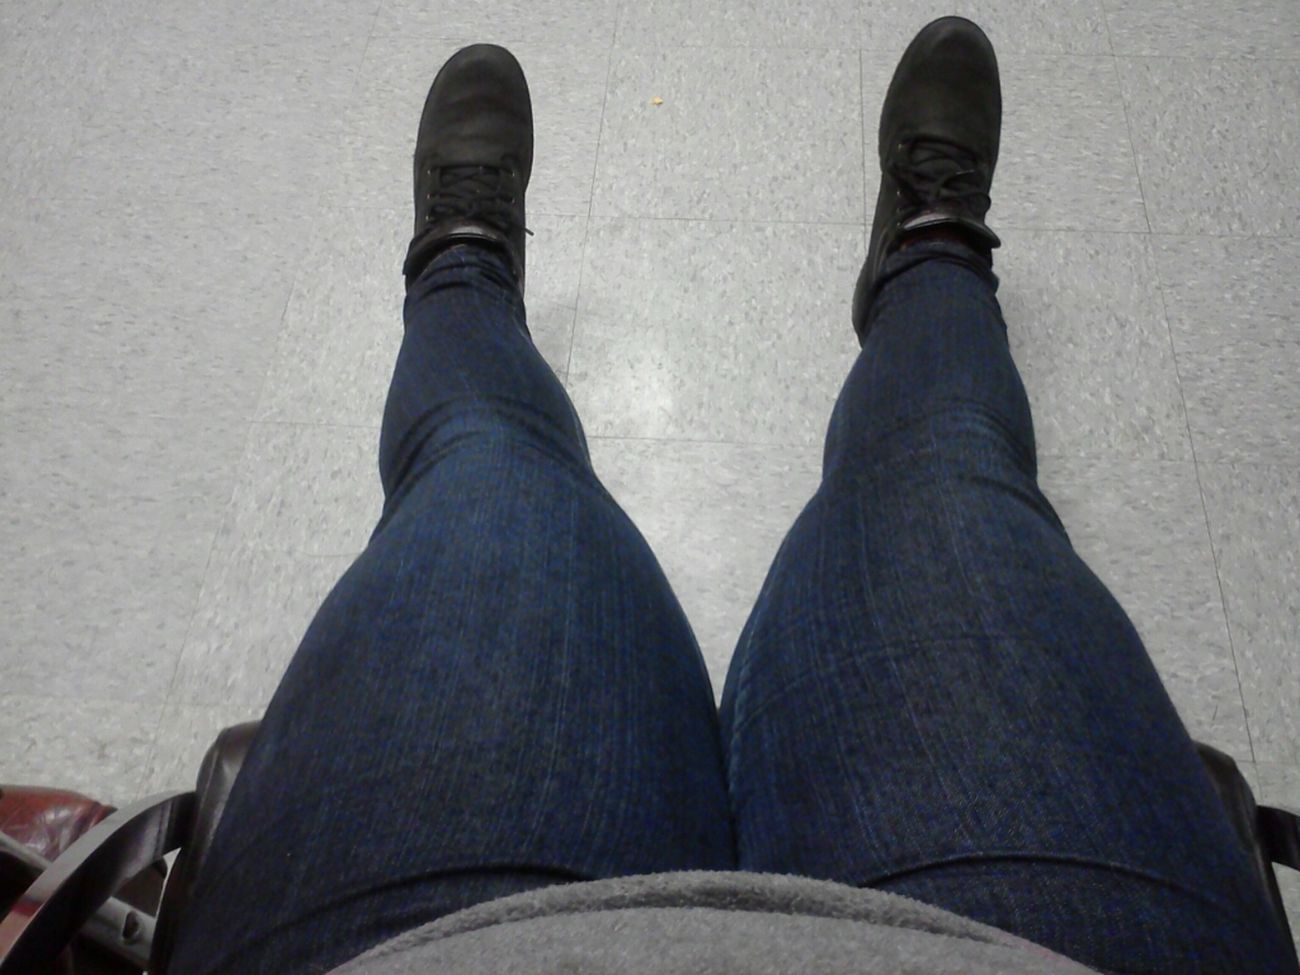 Short & Thick Legs ;) Lol